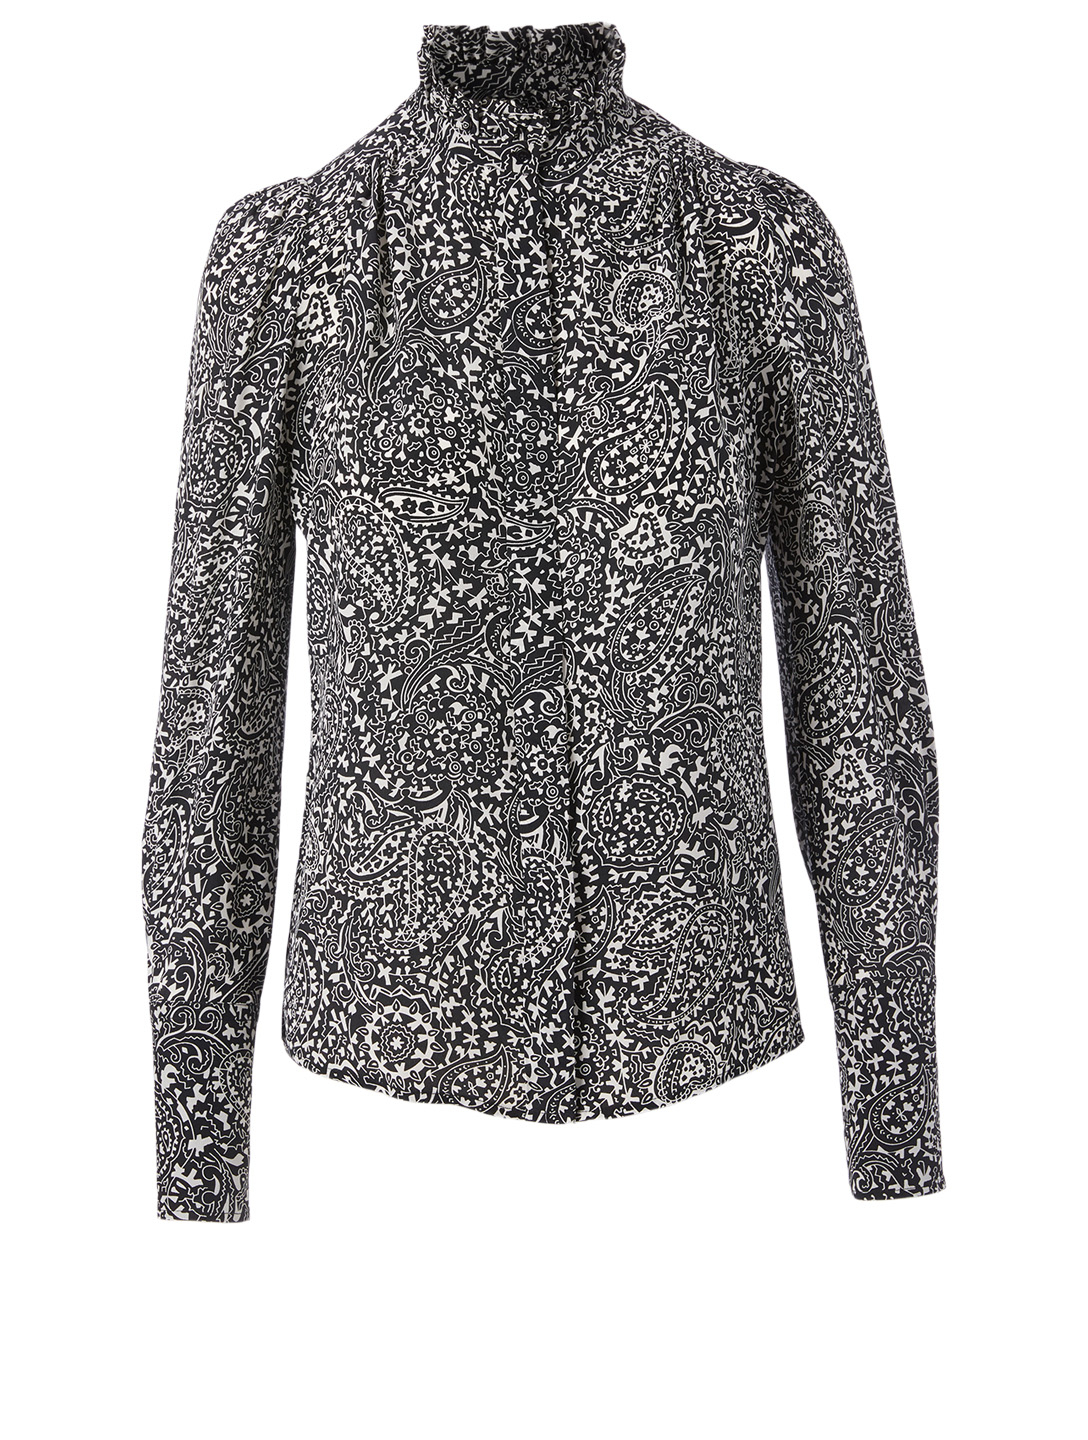 ISABEL MARANT Lamia Silk Blouse In Paisley Print Women's Black